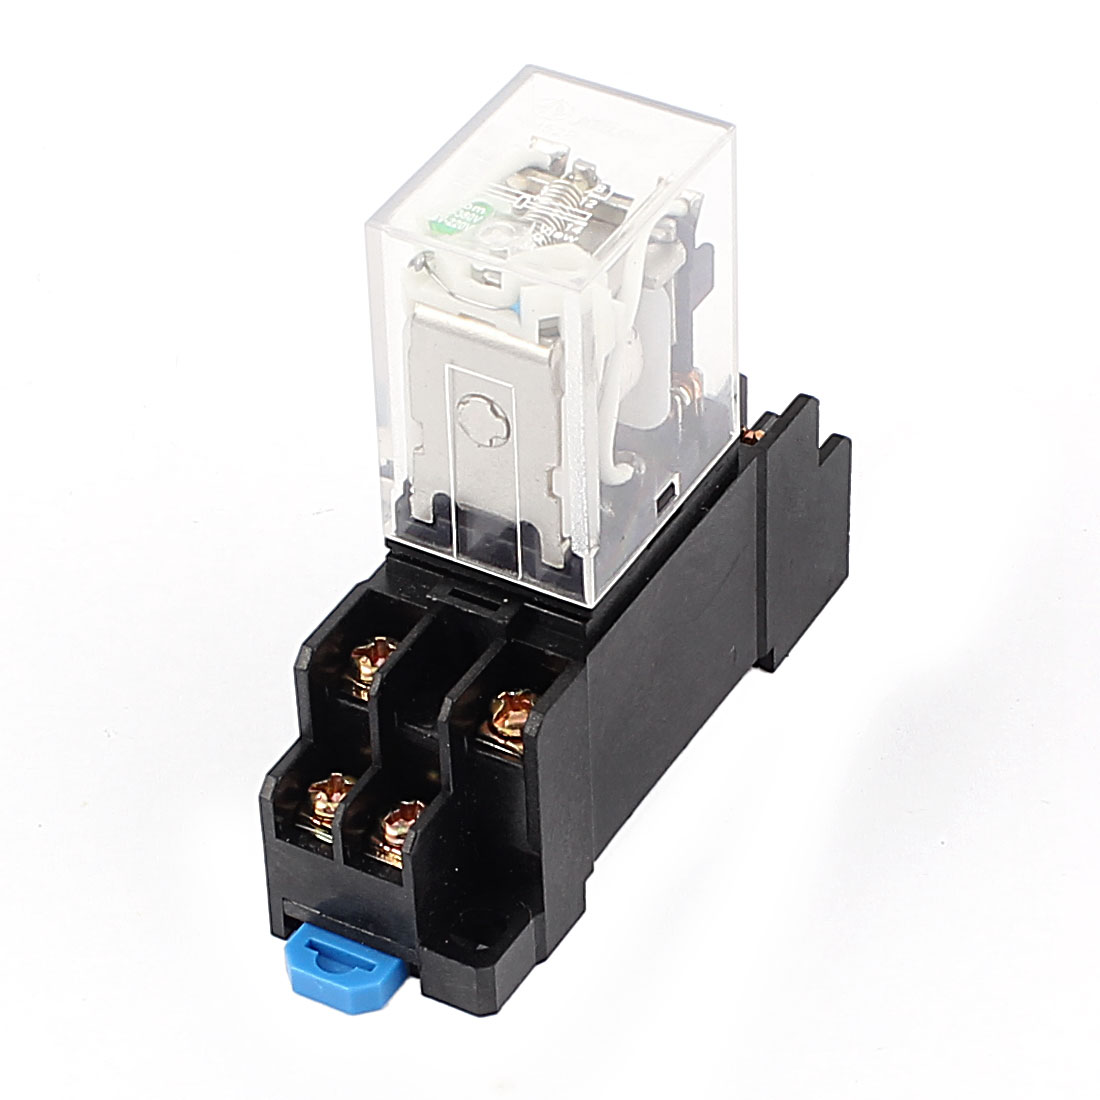 HH52P DC 12V Coil Power Relay 8 Pin DPDT 35mm DIN Rail Mounted w Socket